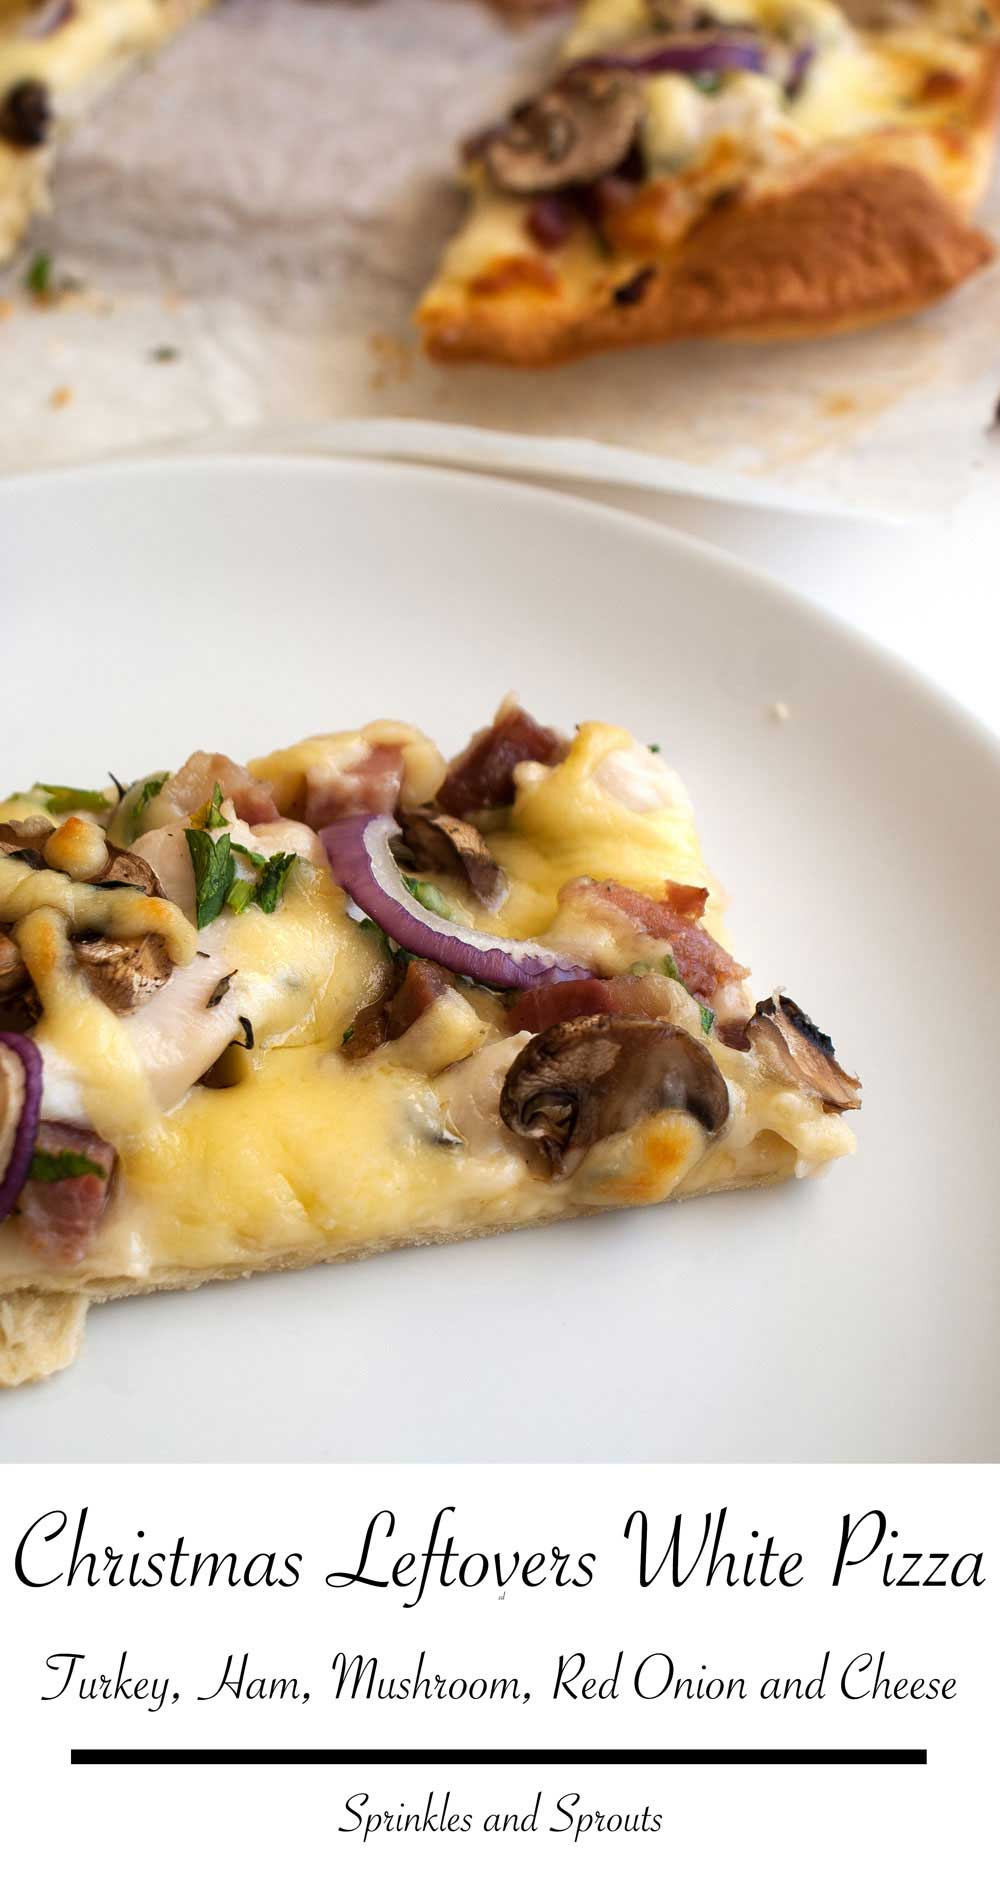 Christmas Leftovers Pizza - White Turkey and Ham. A delicious and different pizza that uses Turkey, Ham, Mushrooms, Red Onions and leftover Cheese.